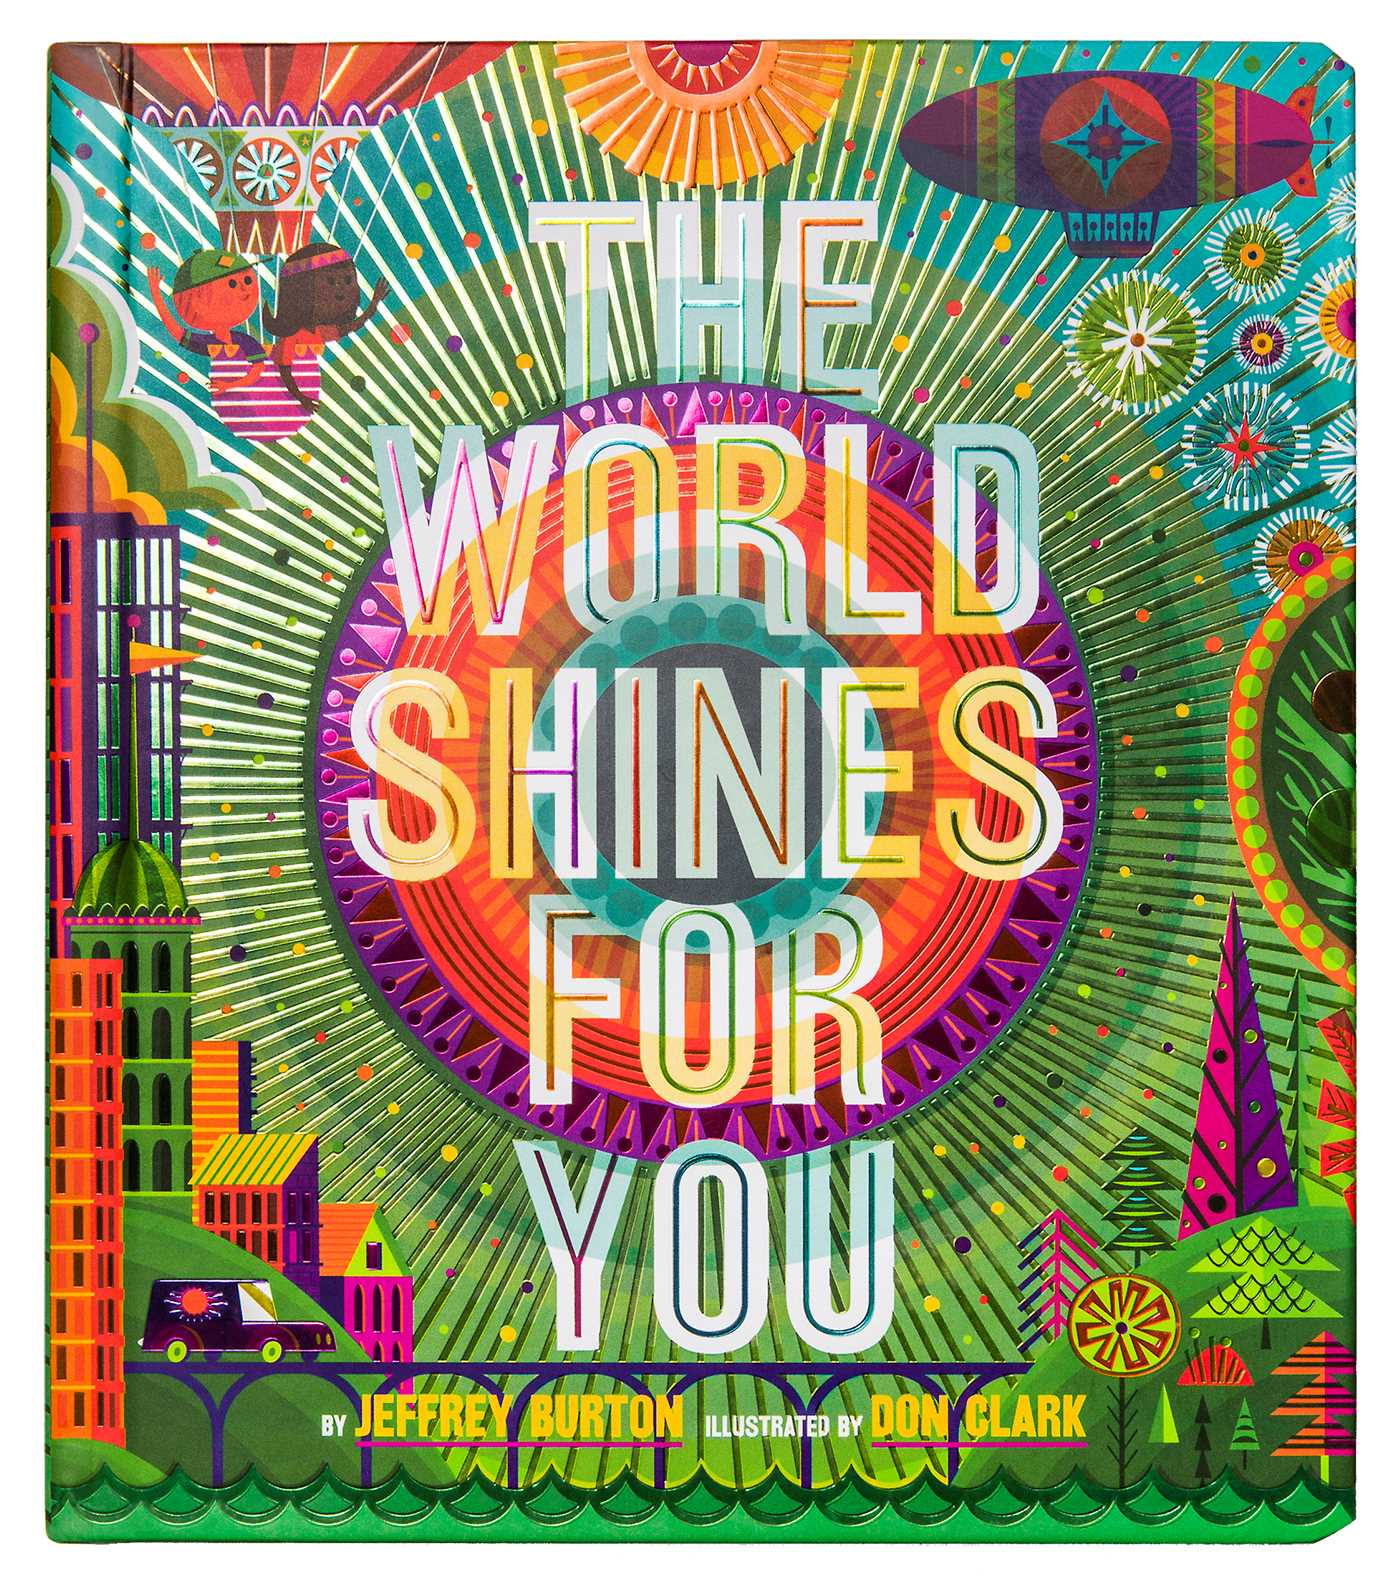 The world shines for you 9781481496322 hr